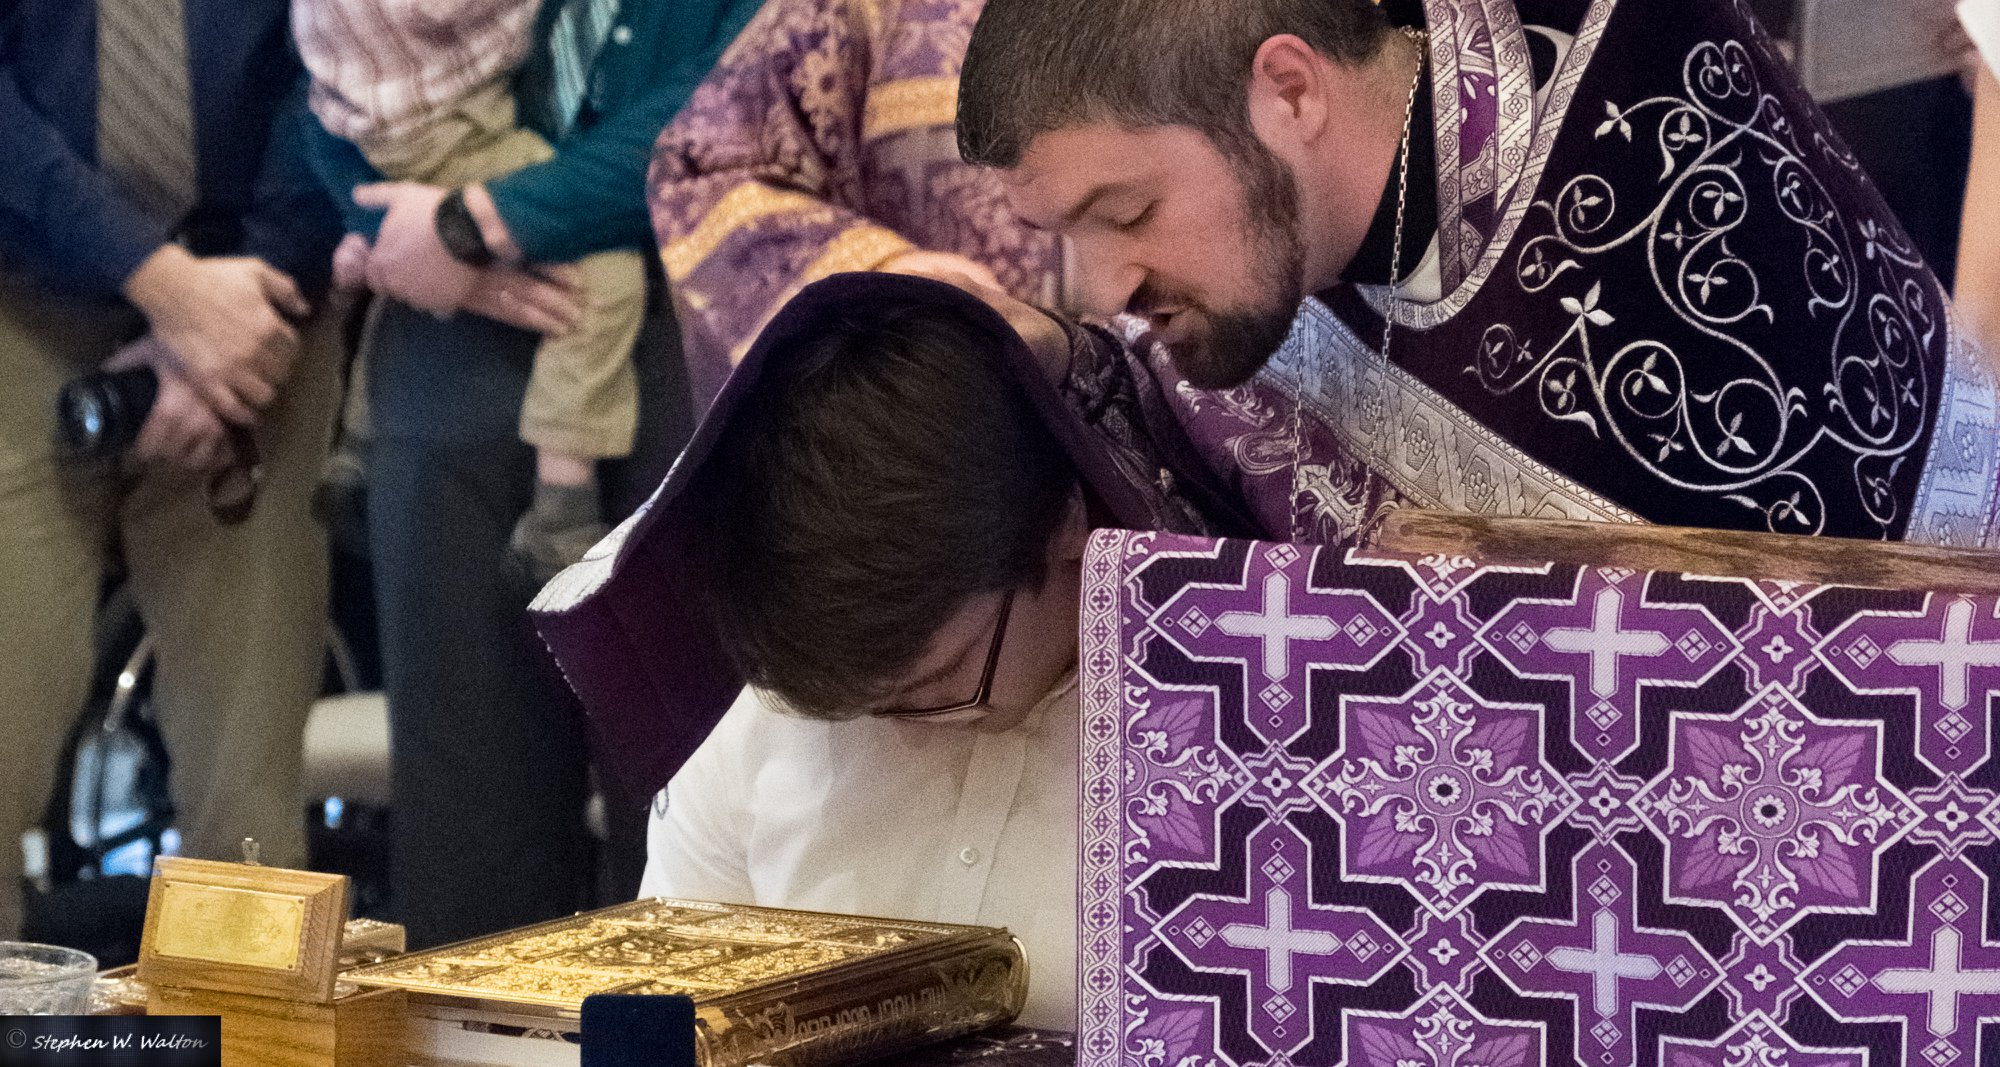 priest covering head of young male with stole offering prayers of absolution